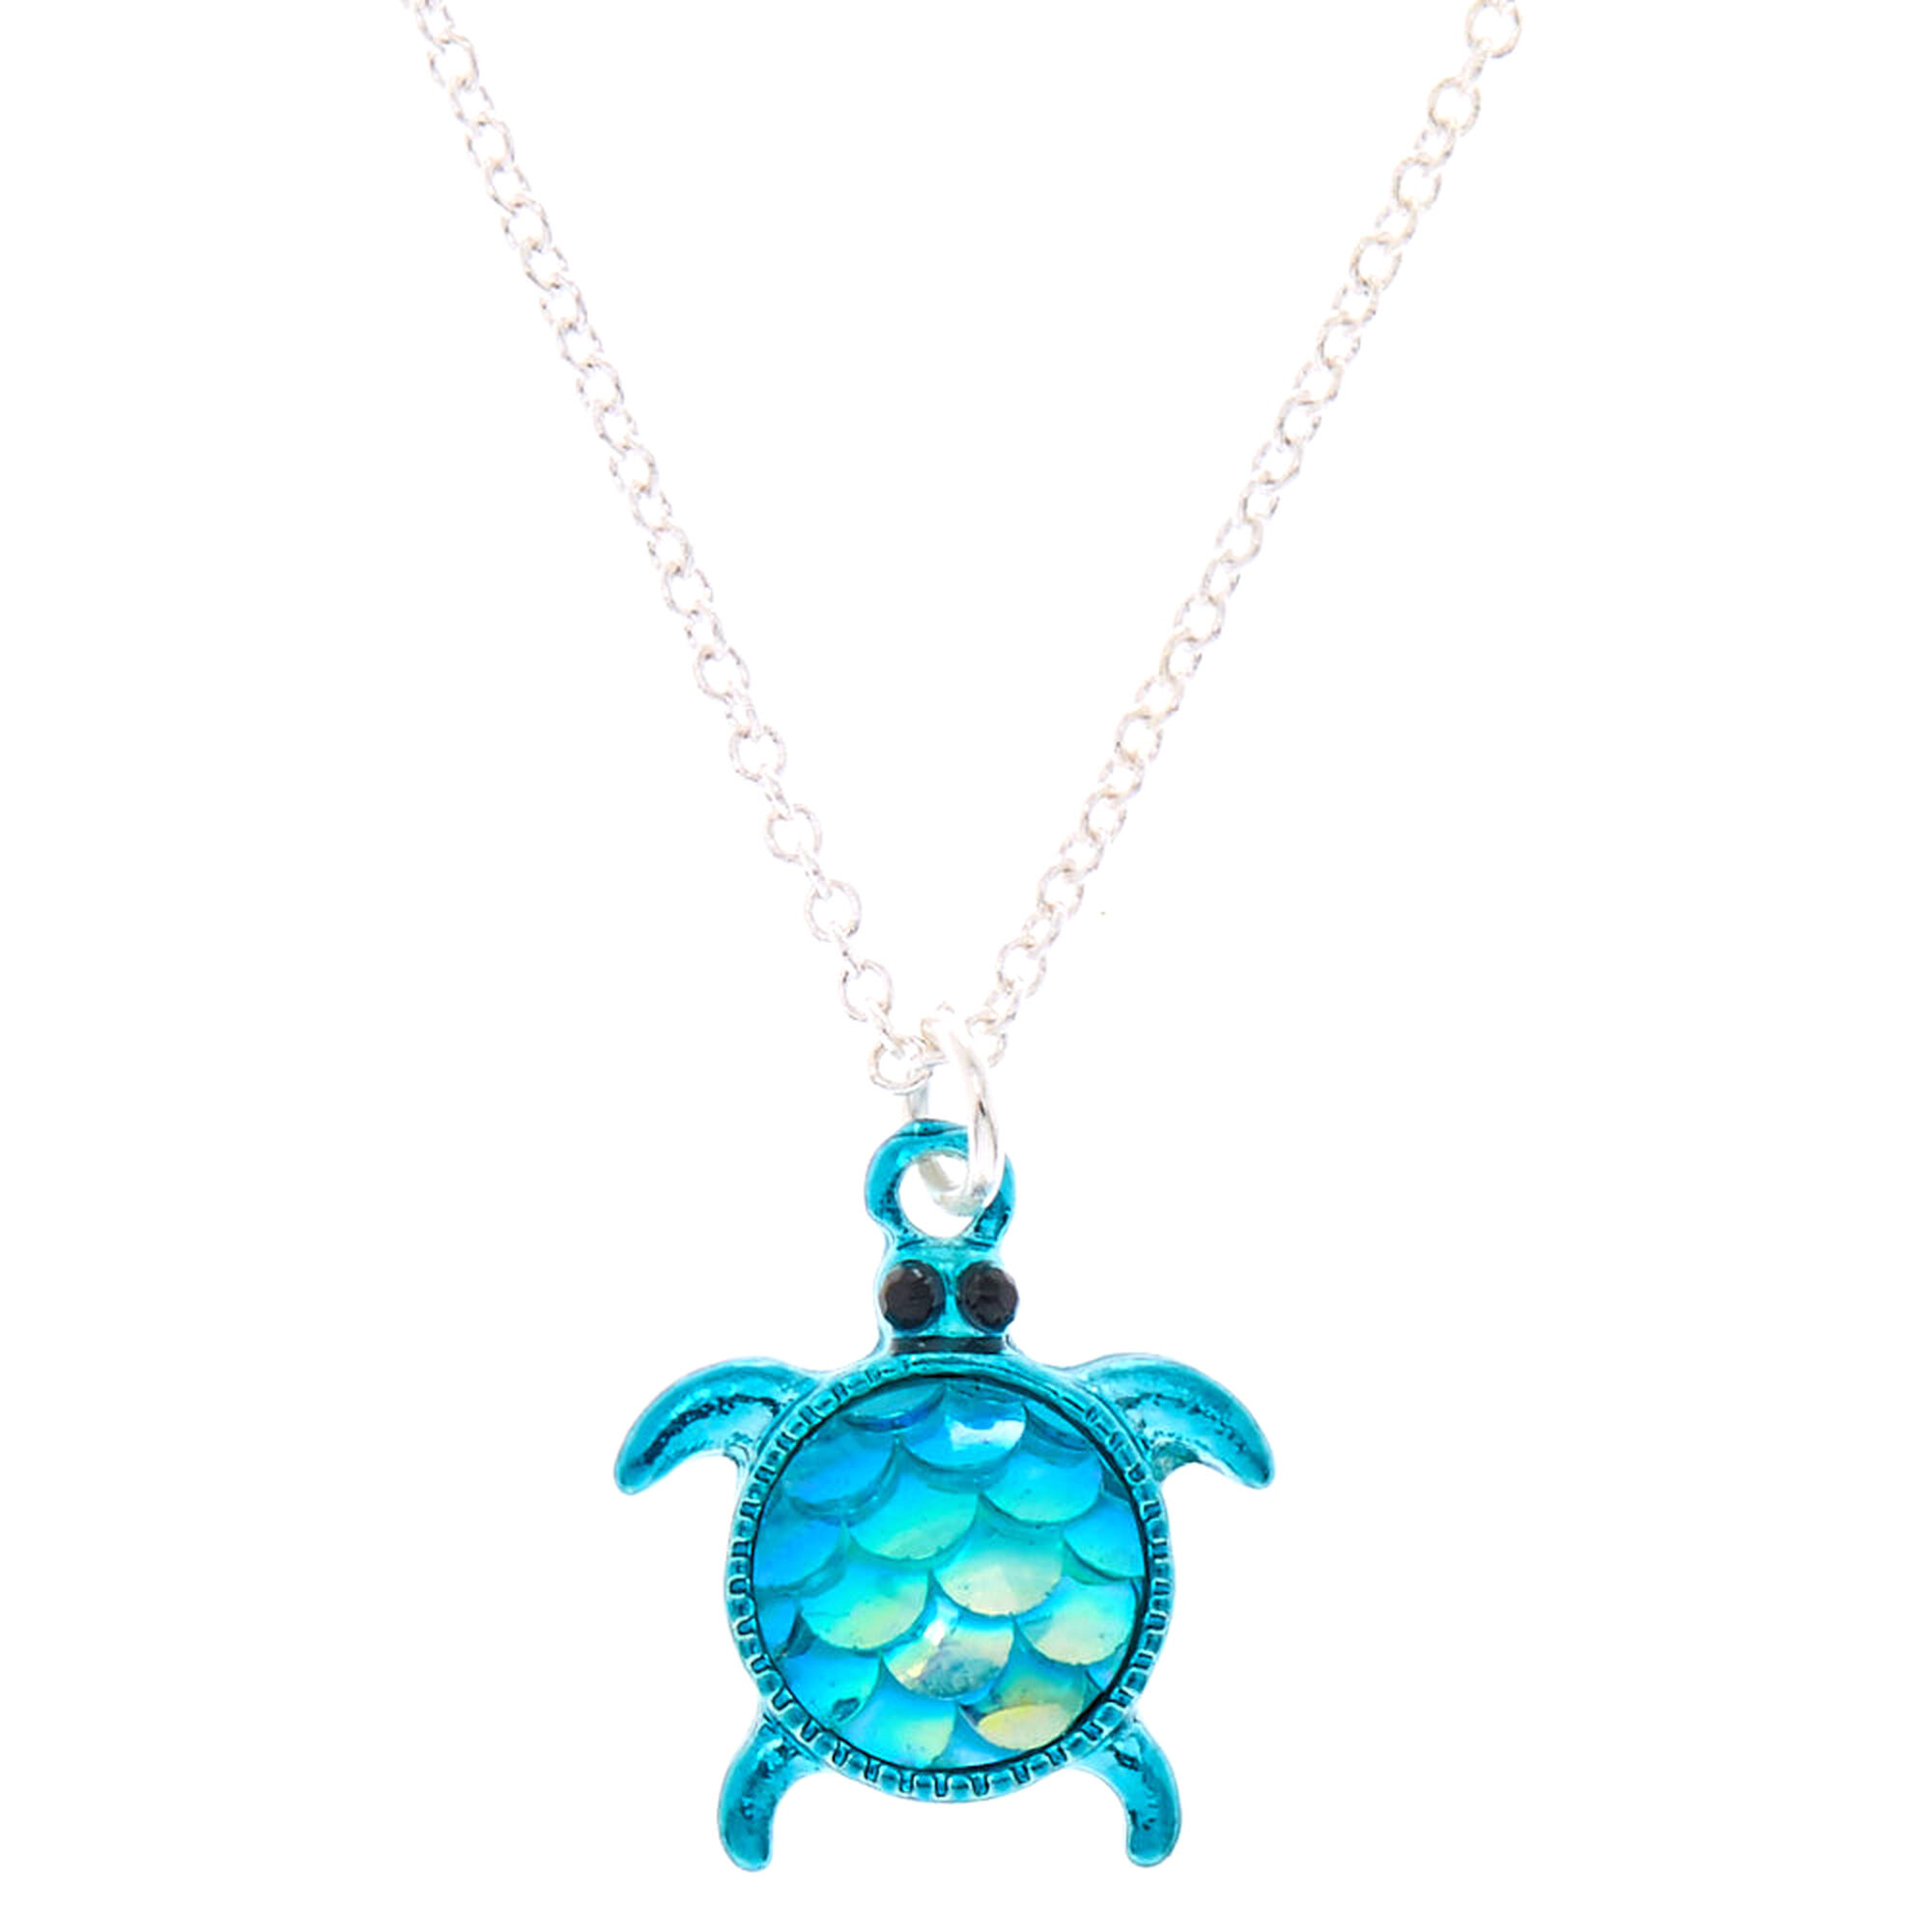 in necklaces that artisan pn spirit this katsaya turtle moveable features plain necklace aeravida an innocense sea details with handcrafted from thailand adorable silver sterling andaman of products mind which